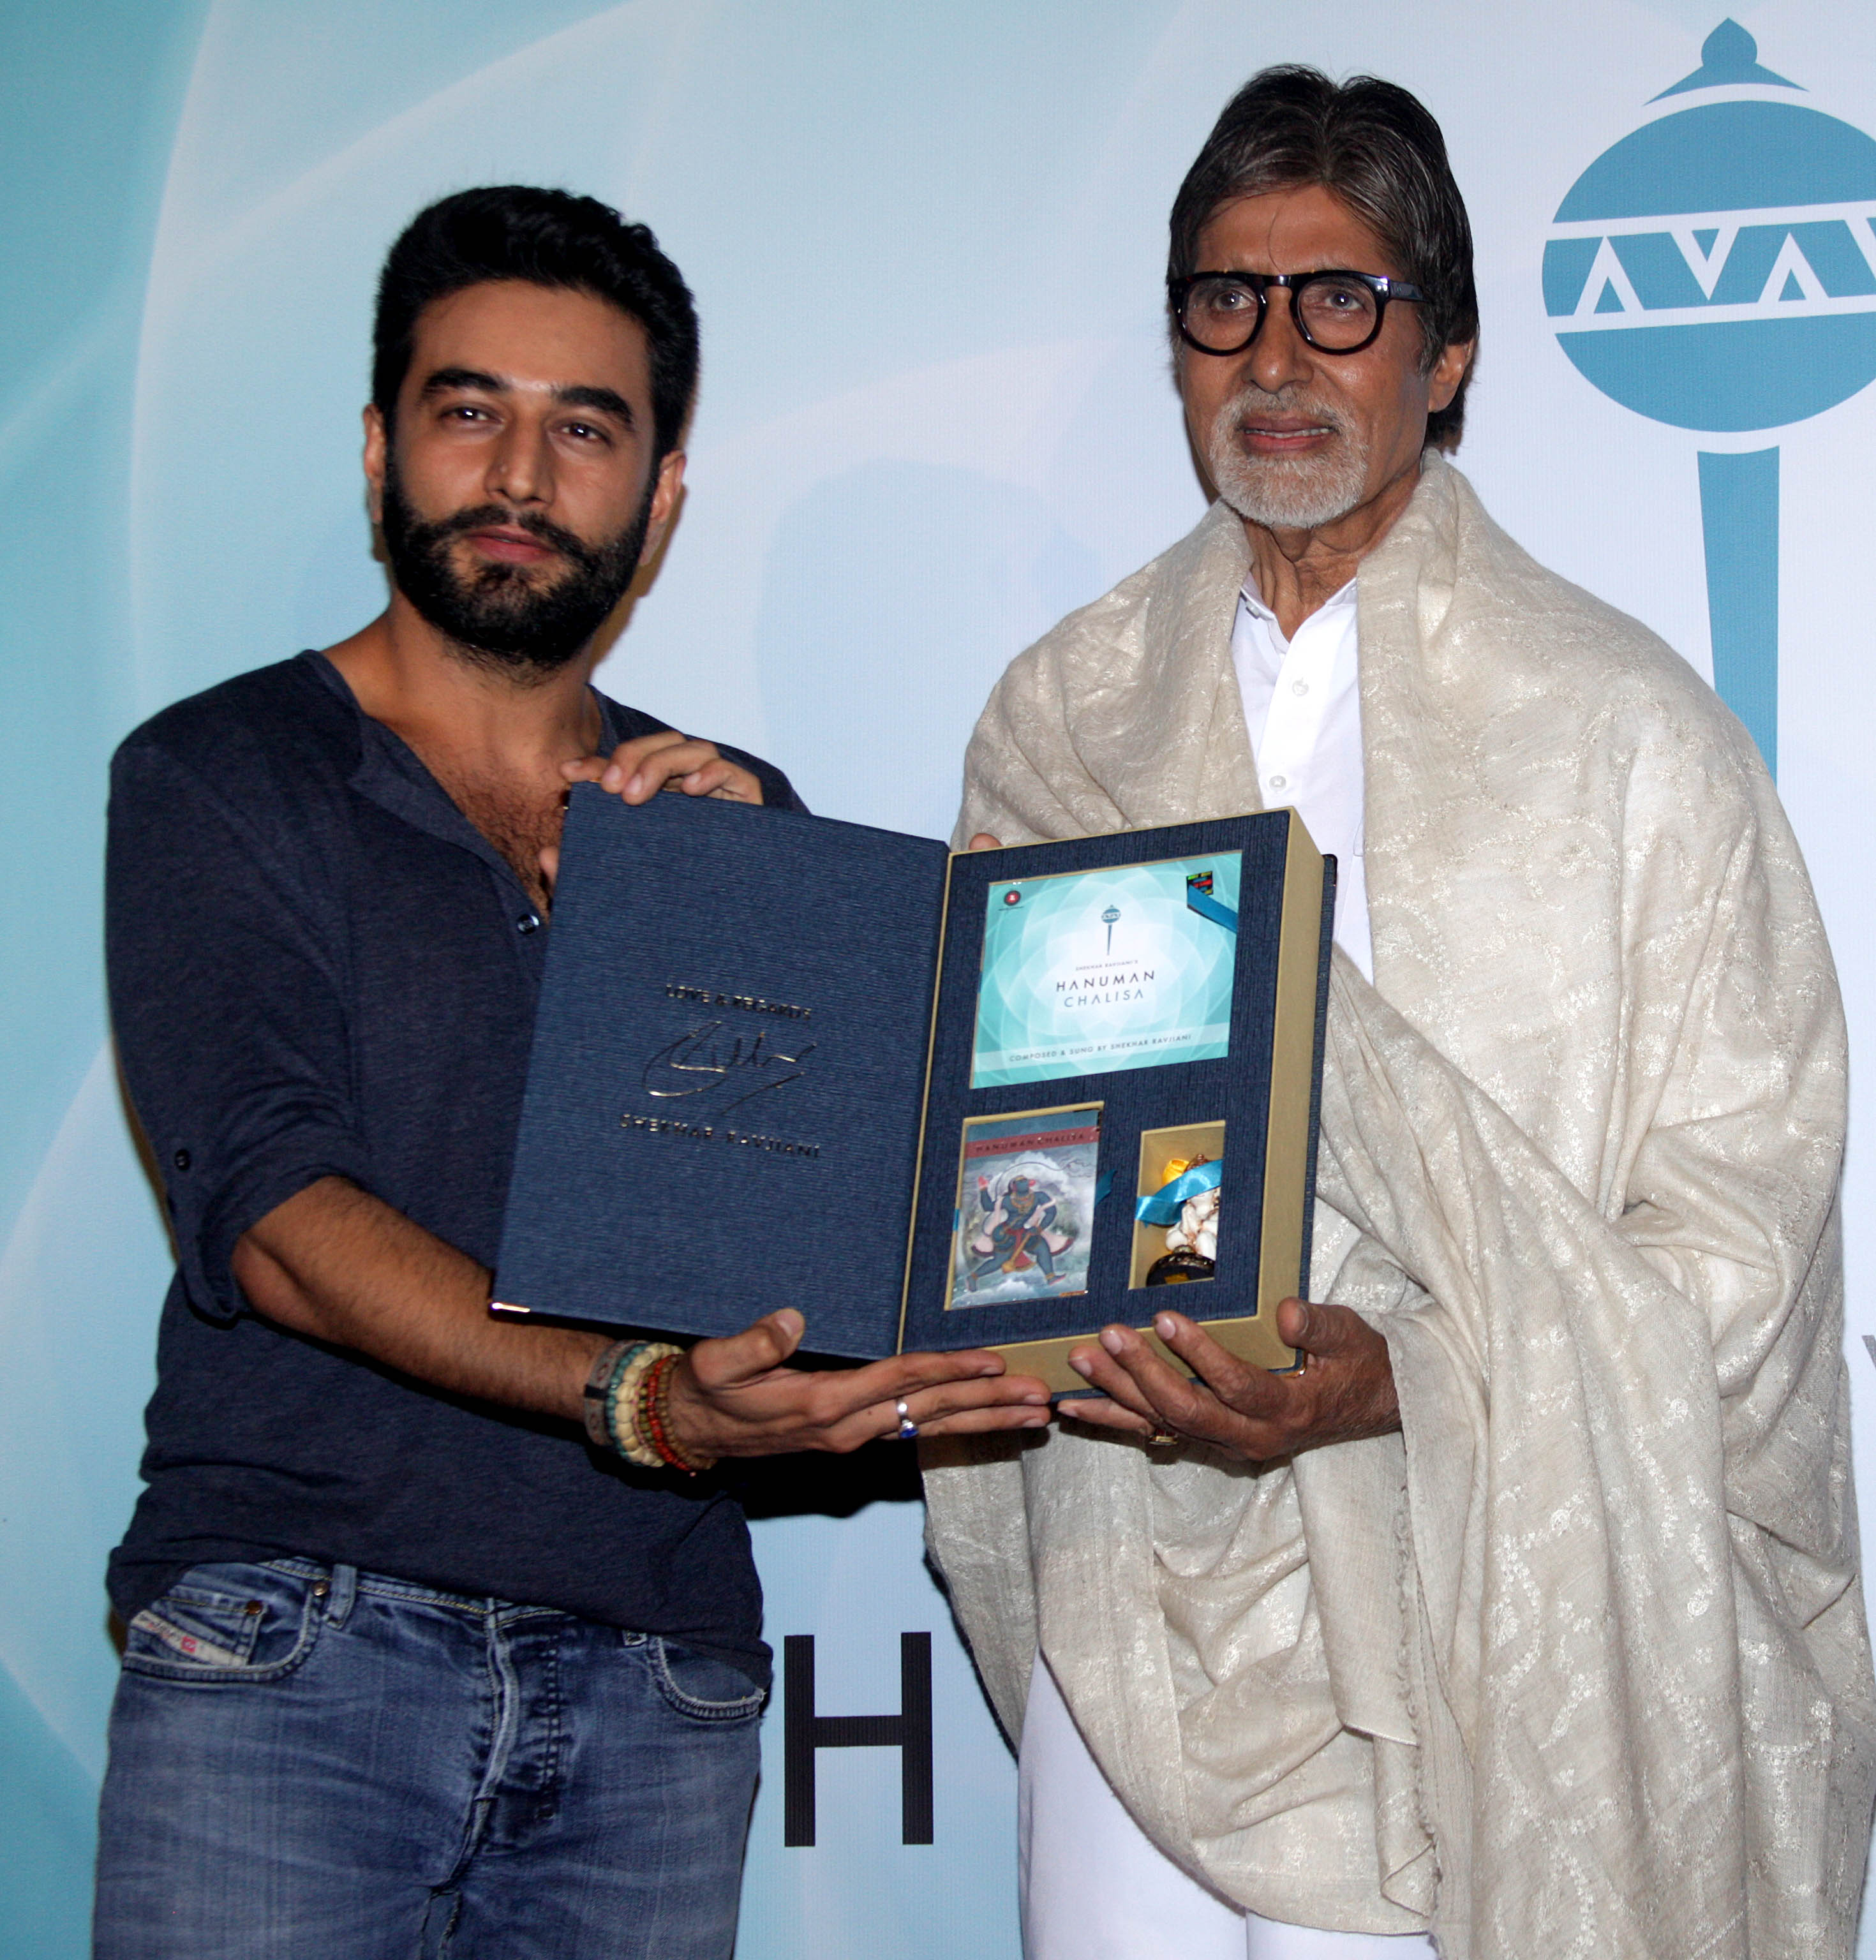 Shekhar Ravjiani and Mr. Amitabh Bachchan at the launch of Shekhar Ravjiani's Hanuman Chalisa in Mumbai on 29.07.2014